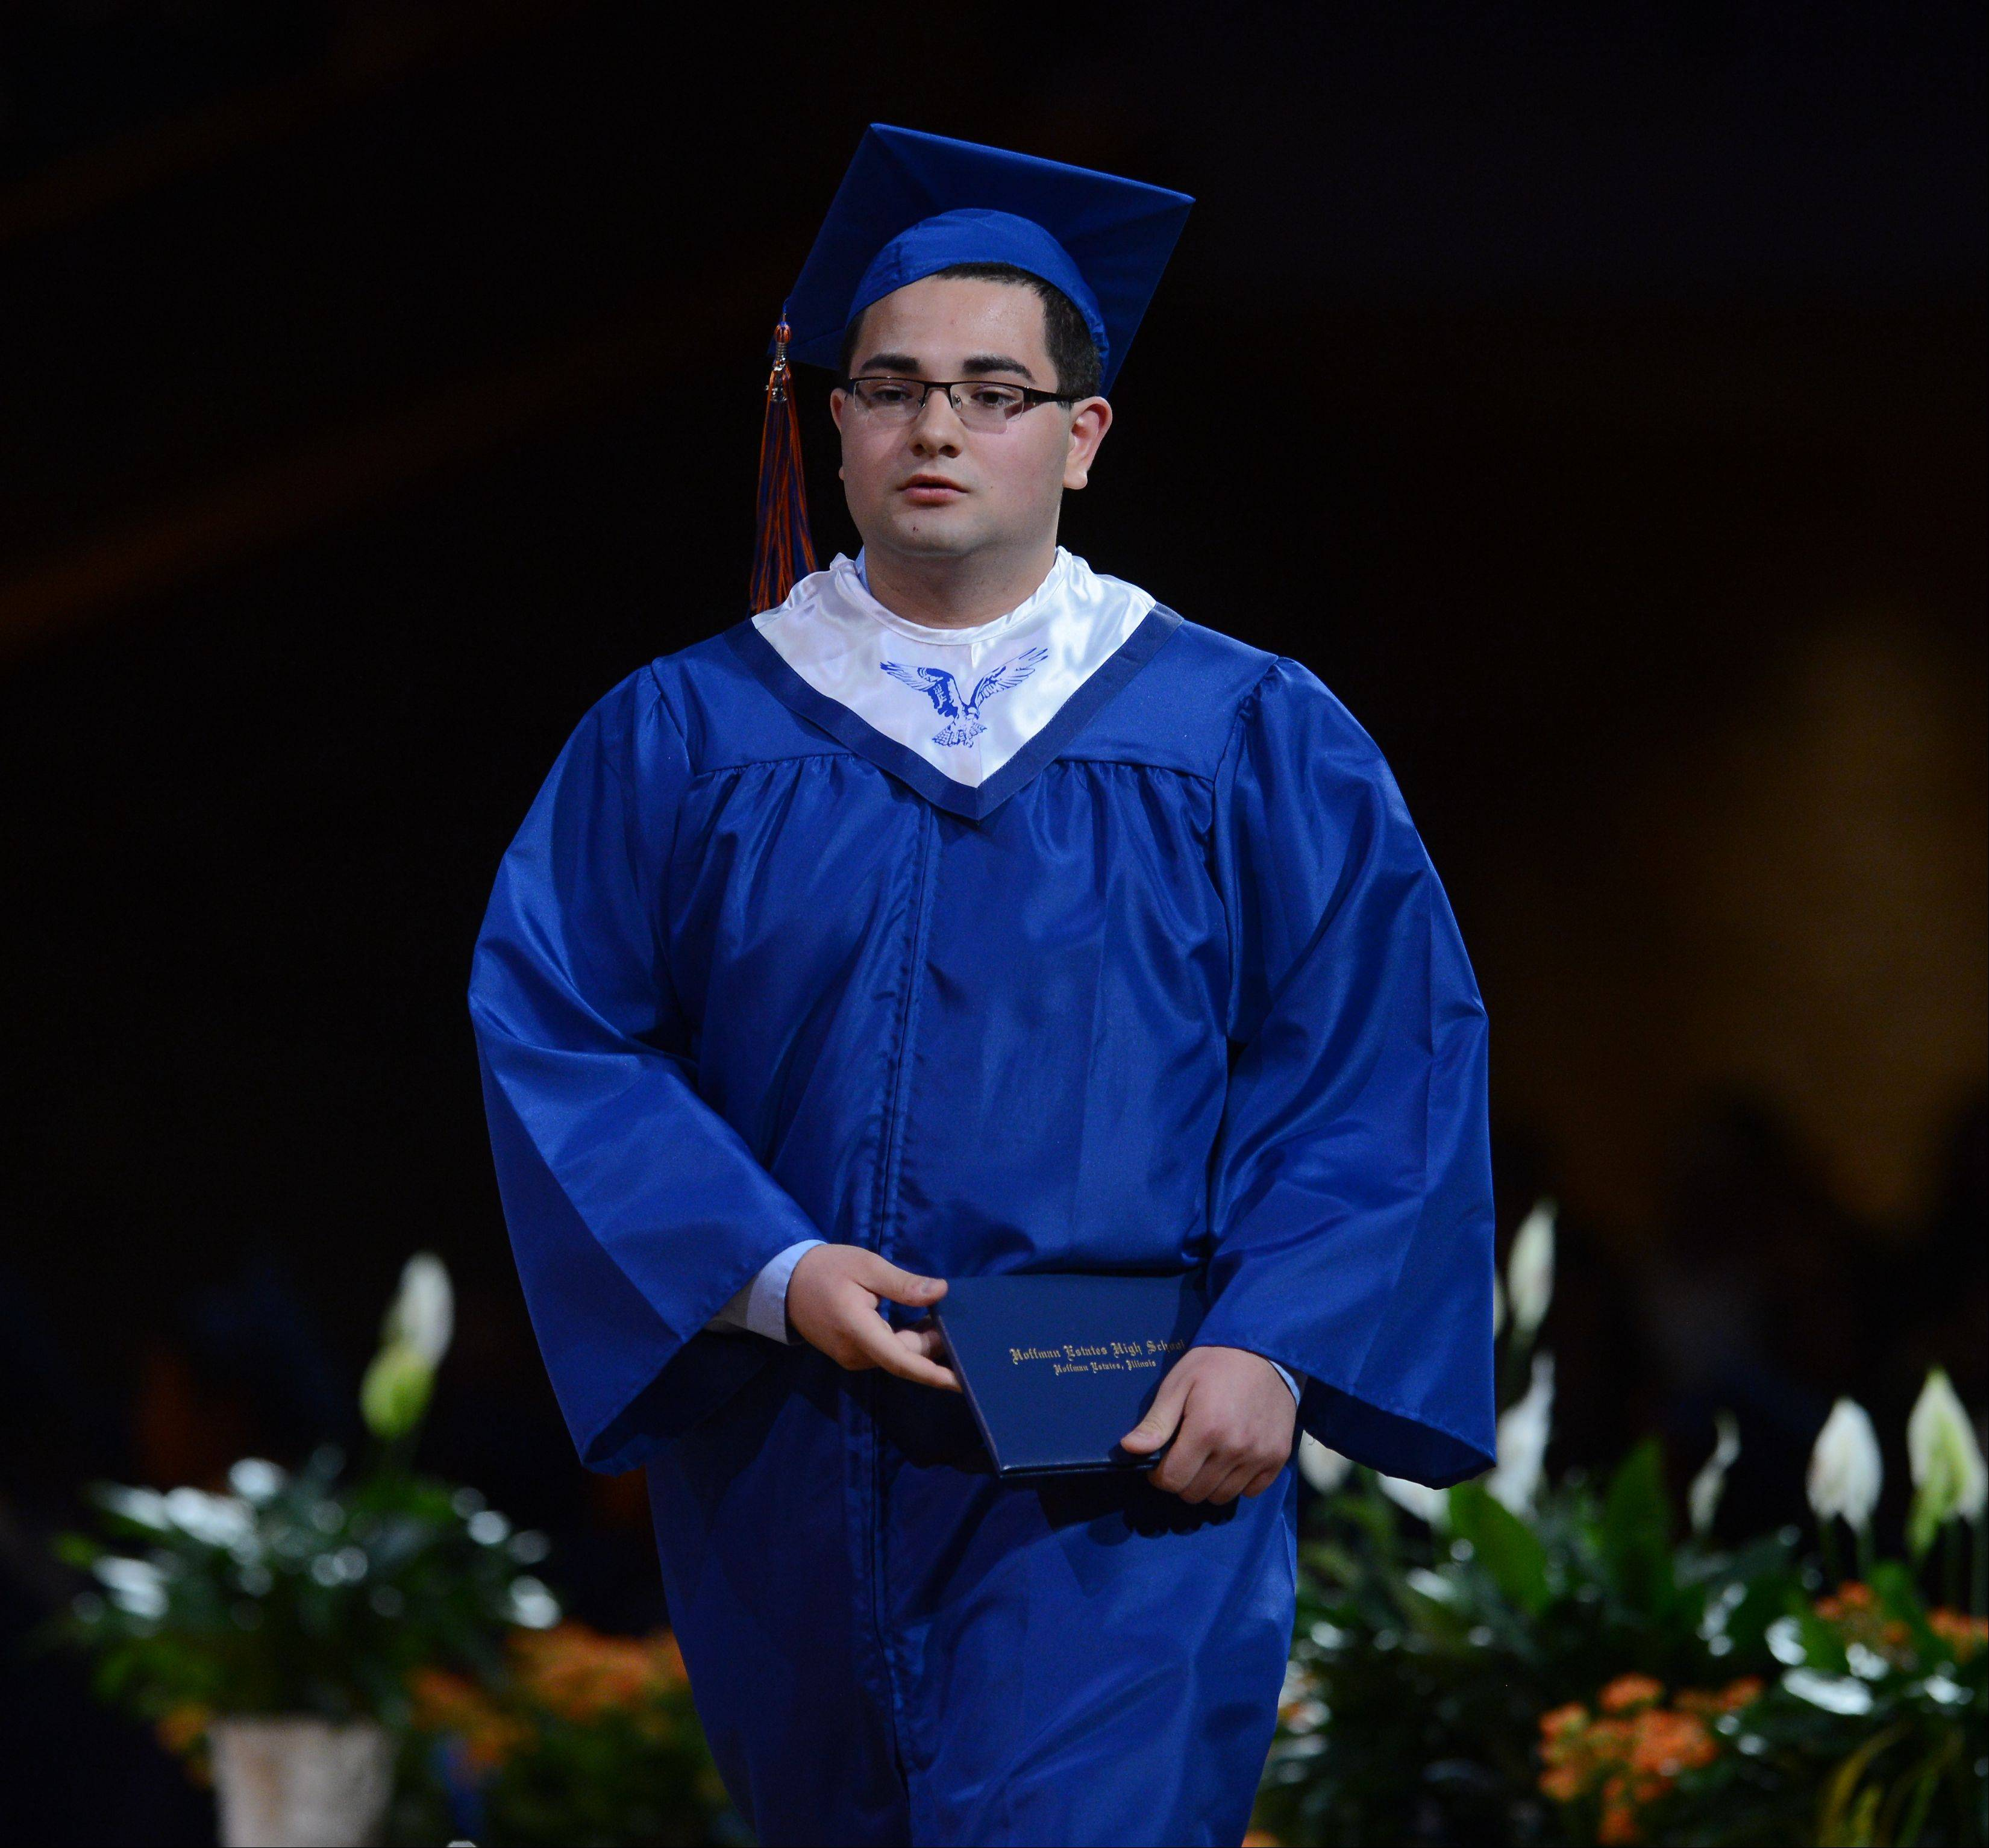 Images from the Hoffman Estates High School graduation on Thursday, May 30, at the Willow Creek church in South Barrington.